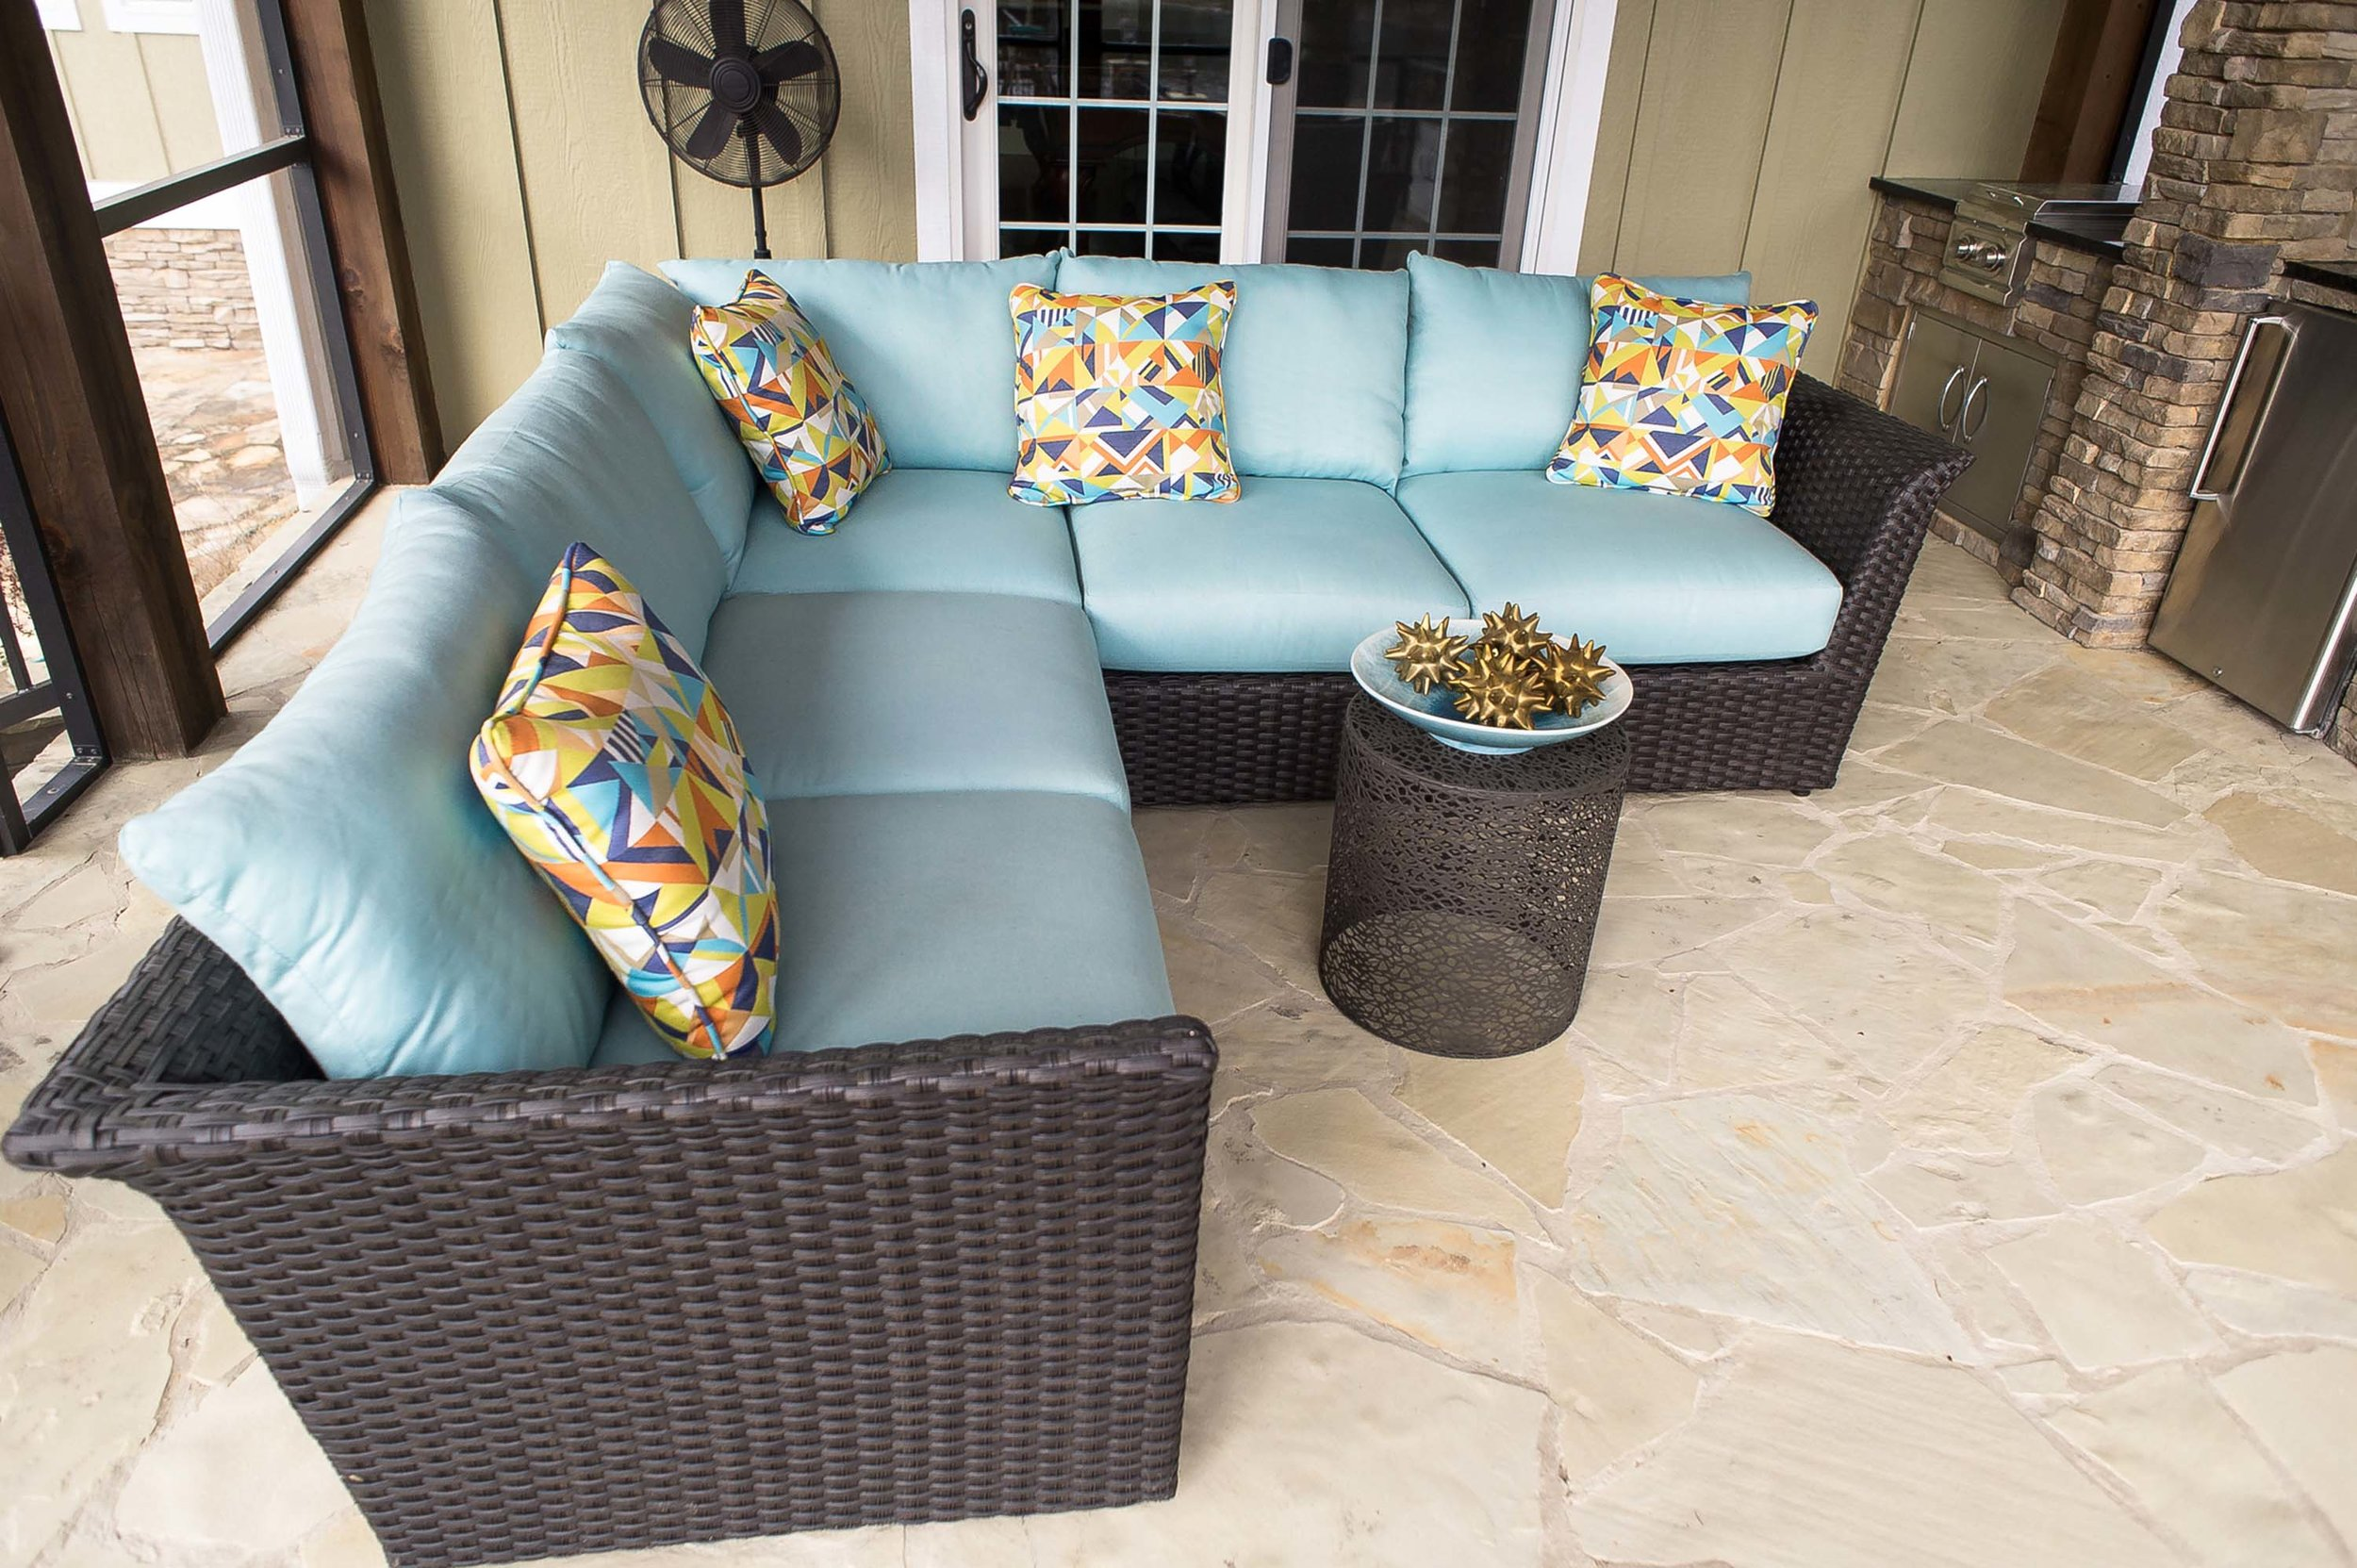 LLoyd Flanders Outdoor Furniture with Elaine Smith Pillows